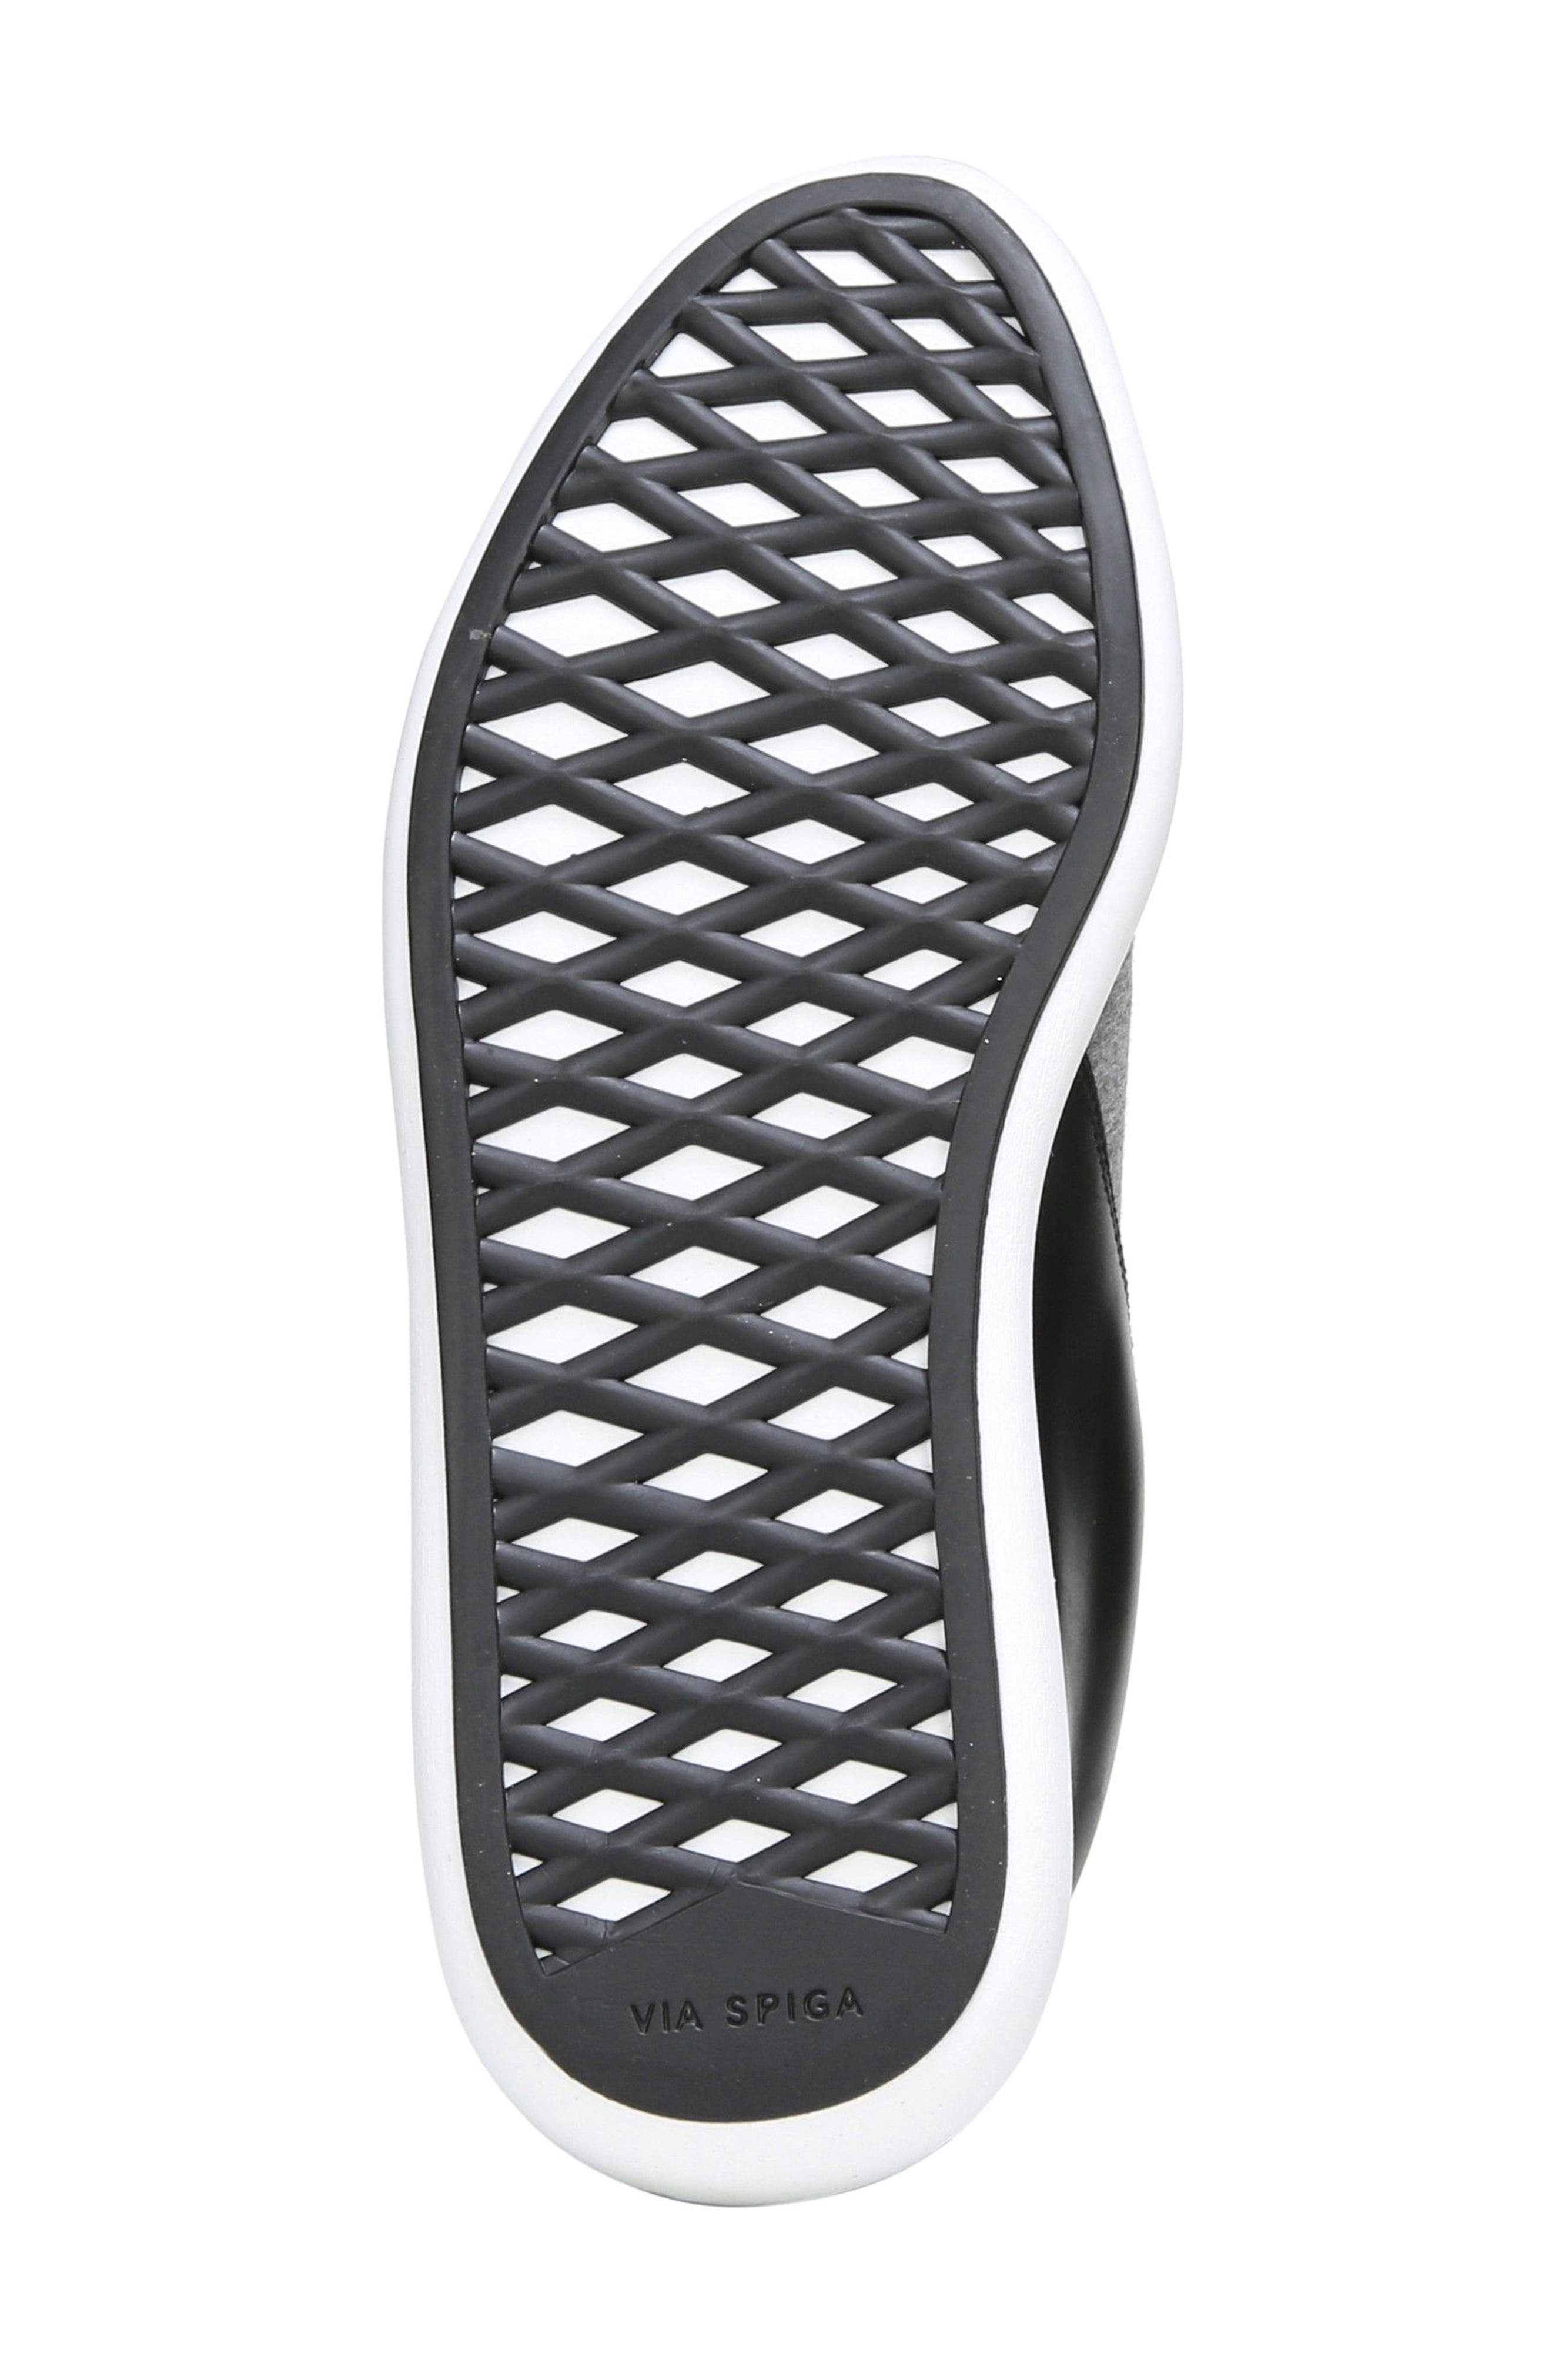 Morgan Slip-On Sneaker,                             Alternate thumbnail 7, color,                             Black/ Gray Stretch Fabric